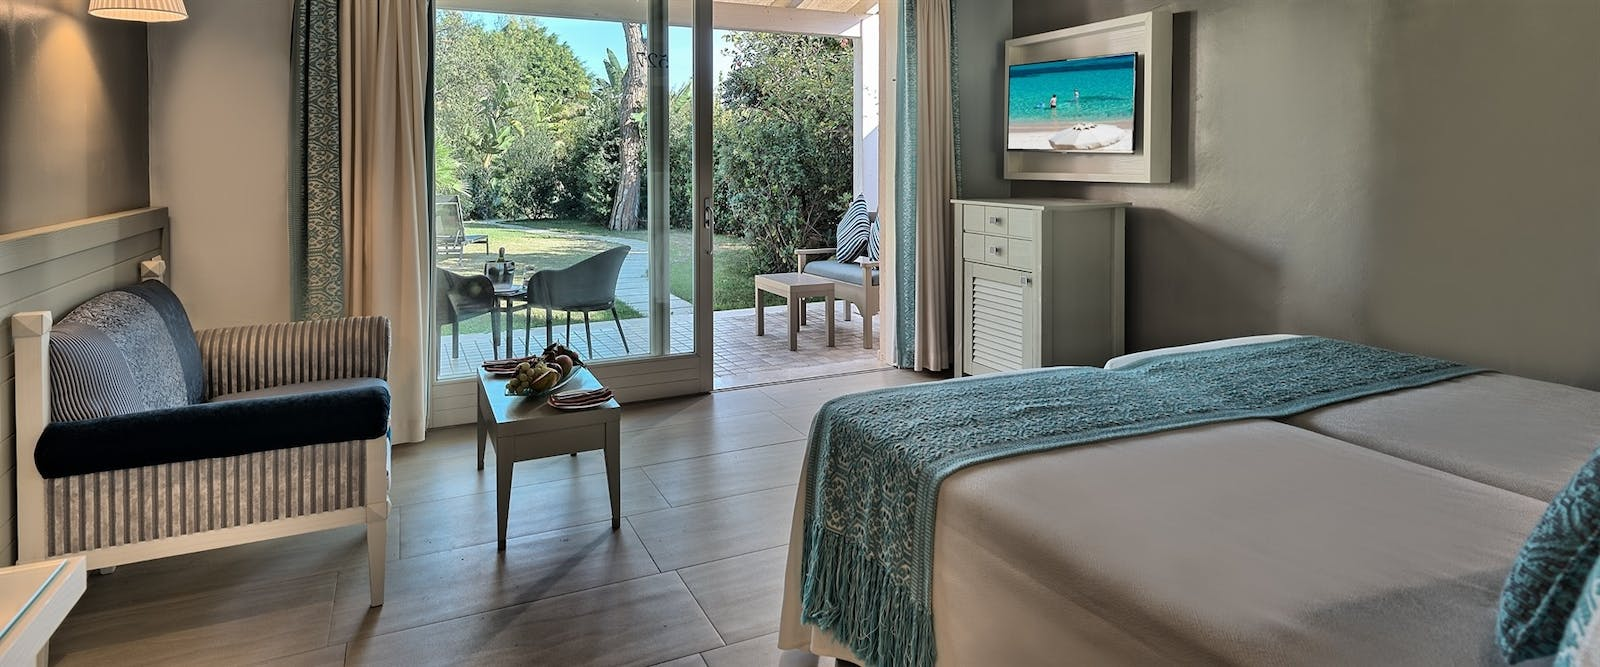 Deluxe Bungalow at Forte Village Le Palme, South Sardinia, Italy